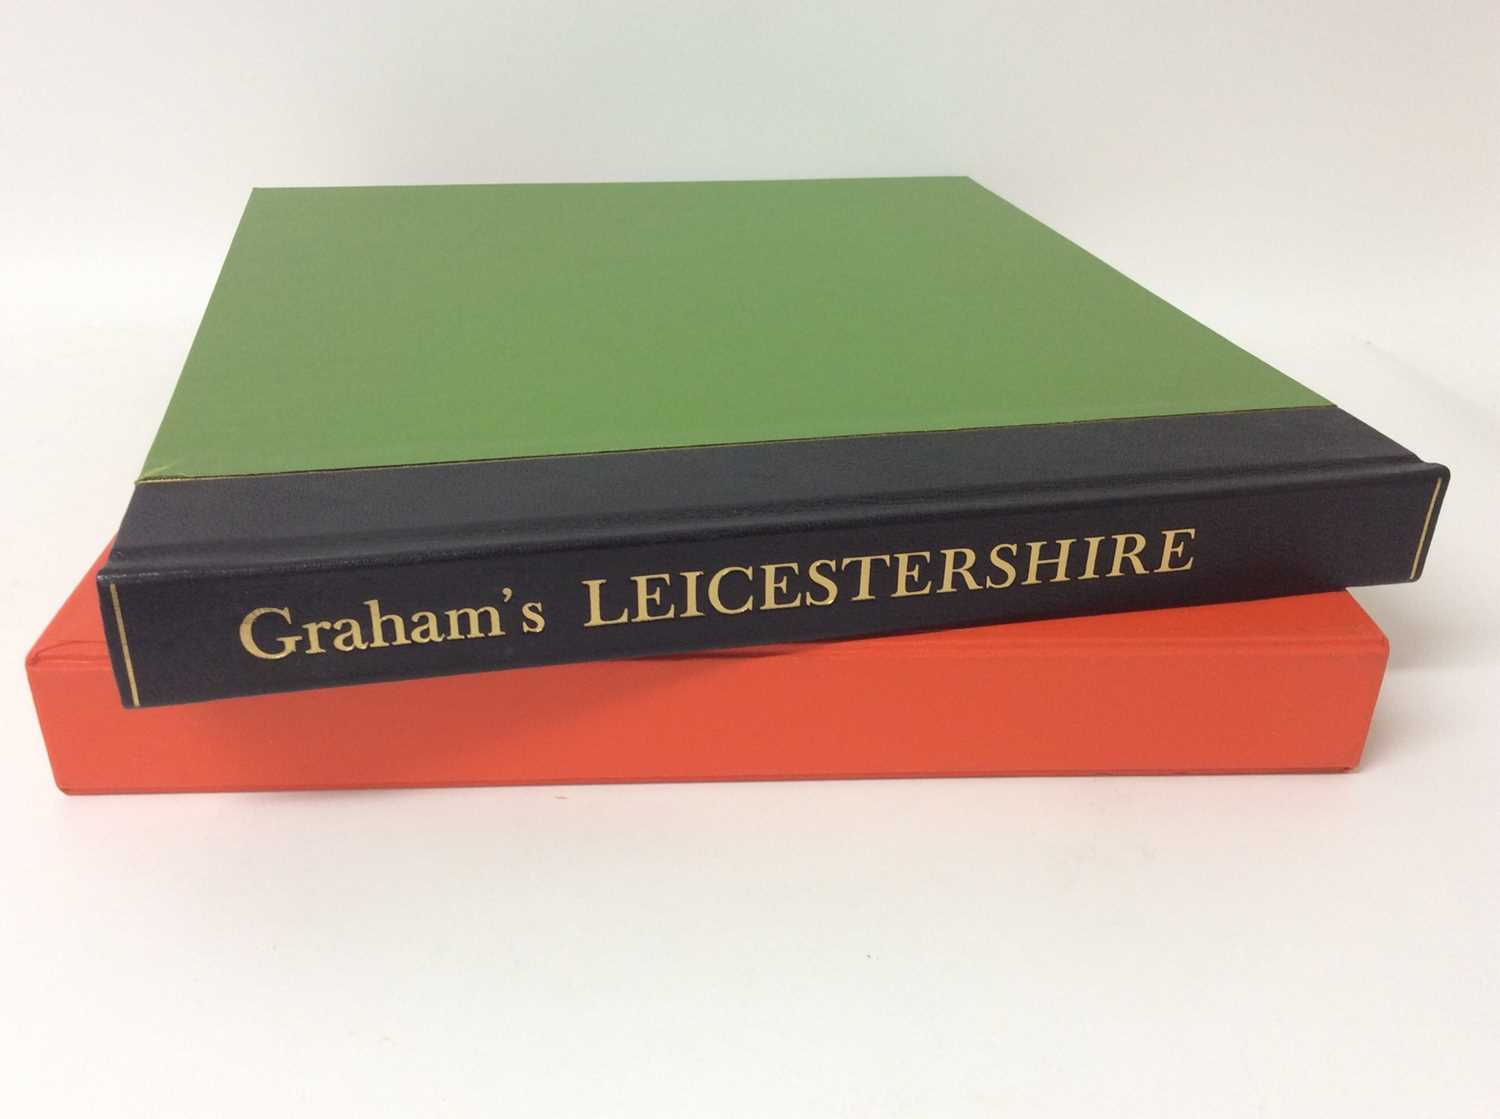 Rigby Graham, Leicestershire, Sycamore Press / Gadsby Gallery, Leicester 1980, folio book in slip co - Image 2 of 10